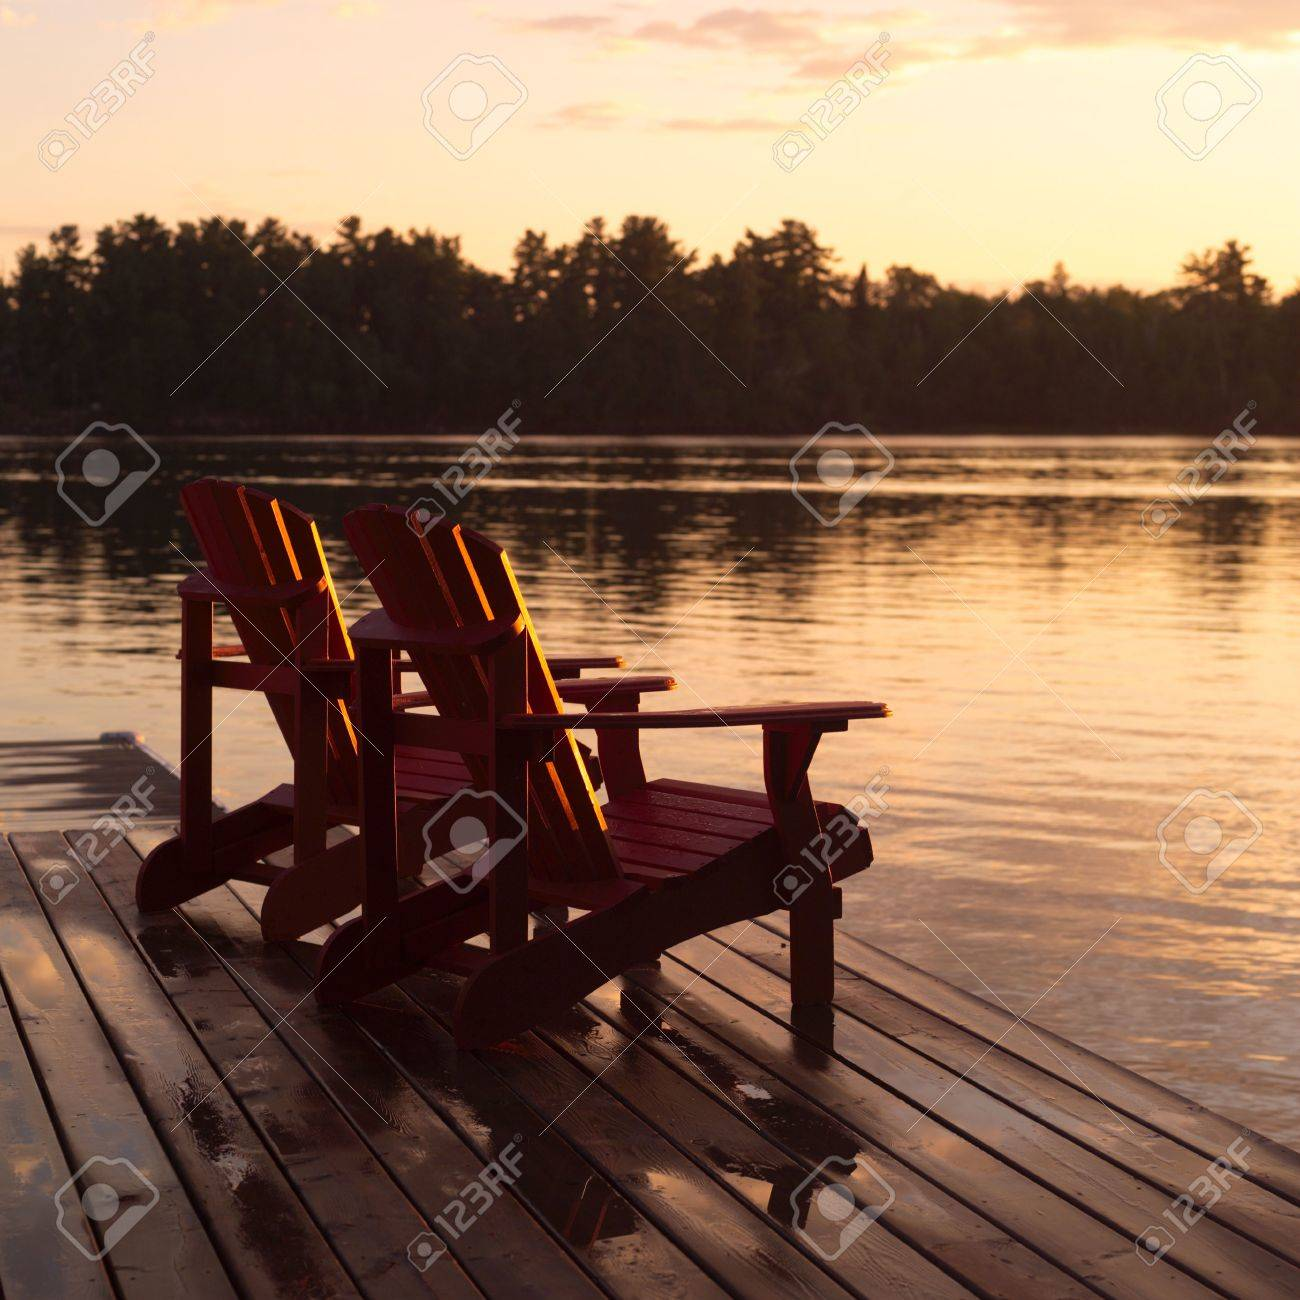 Lake Of The Woods Ontario Canada,Empty Chairs On Dock Stock Photo   2345867